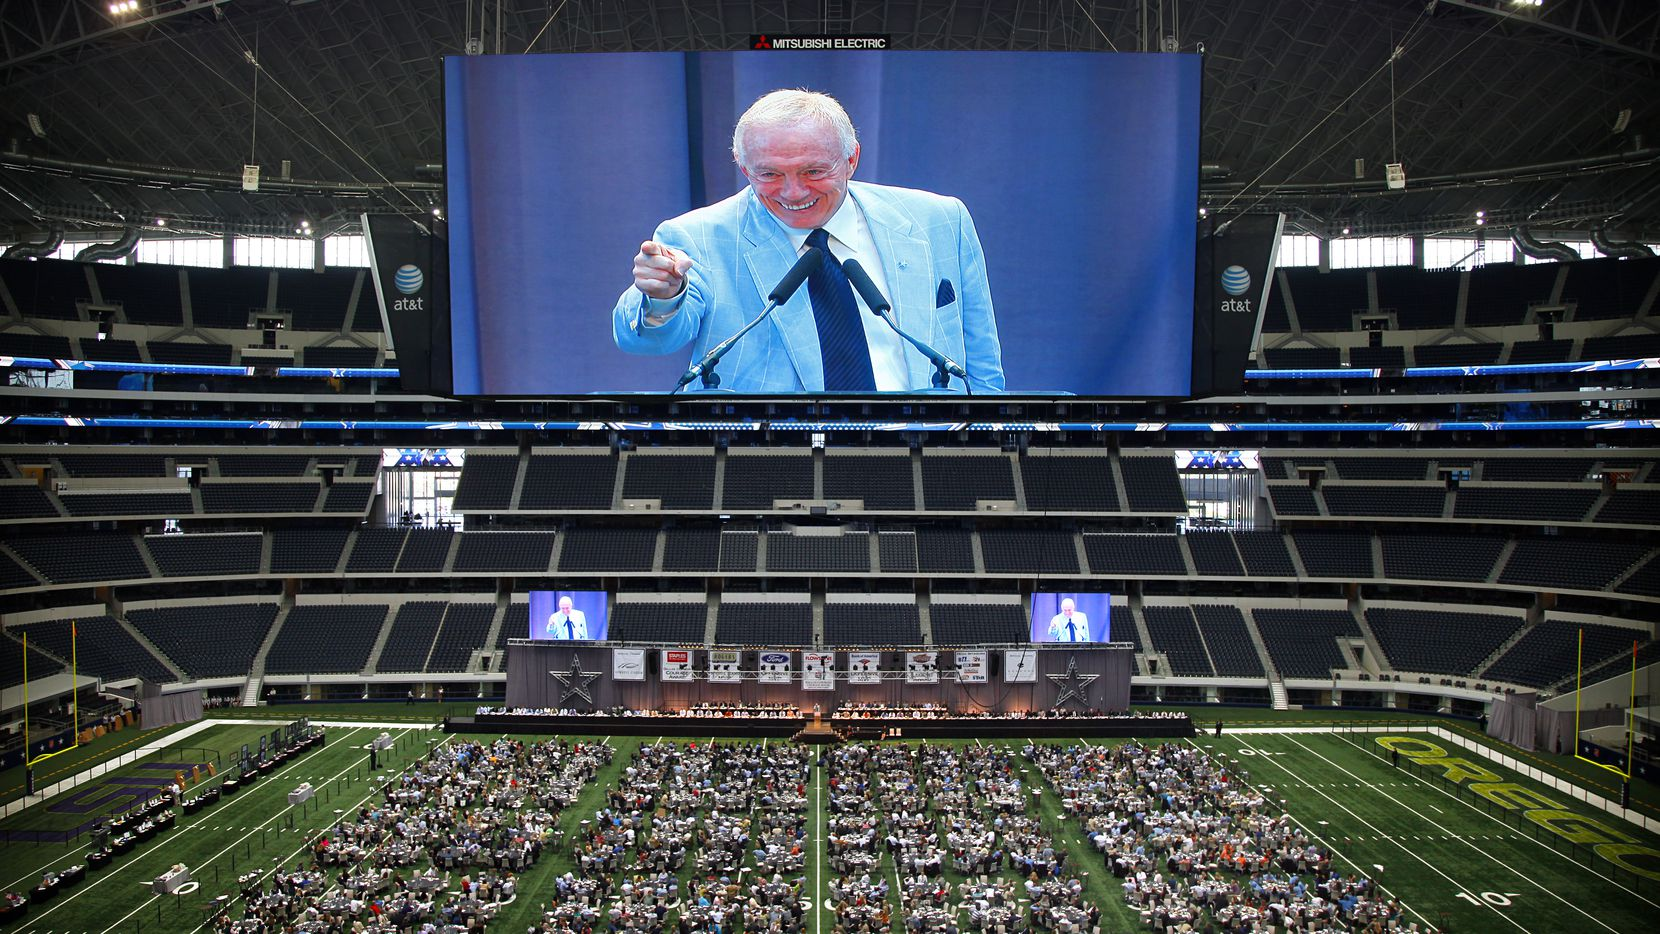 Dallas Cowboys owner Jerry Jones, on the center hung video board, delivers his preseason message to those in attendance at the 2011 Dallas Cowboys Luncheon on the field of Cowboys Stadium, Wednesday, August 31, 2011. The event benefits The Dallas Cowboys Courage House located at Happy Hill Farm.  (Tom Fox/The Dallas Morning News)